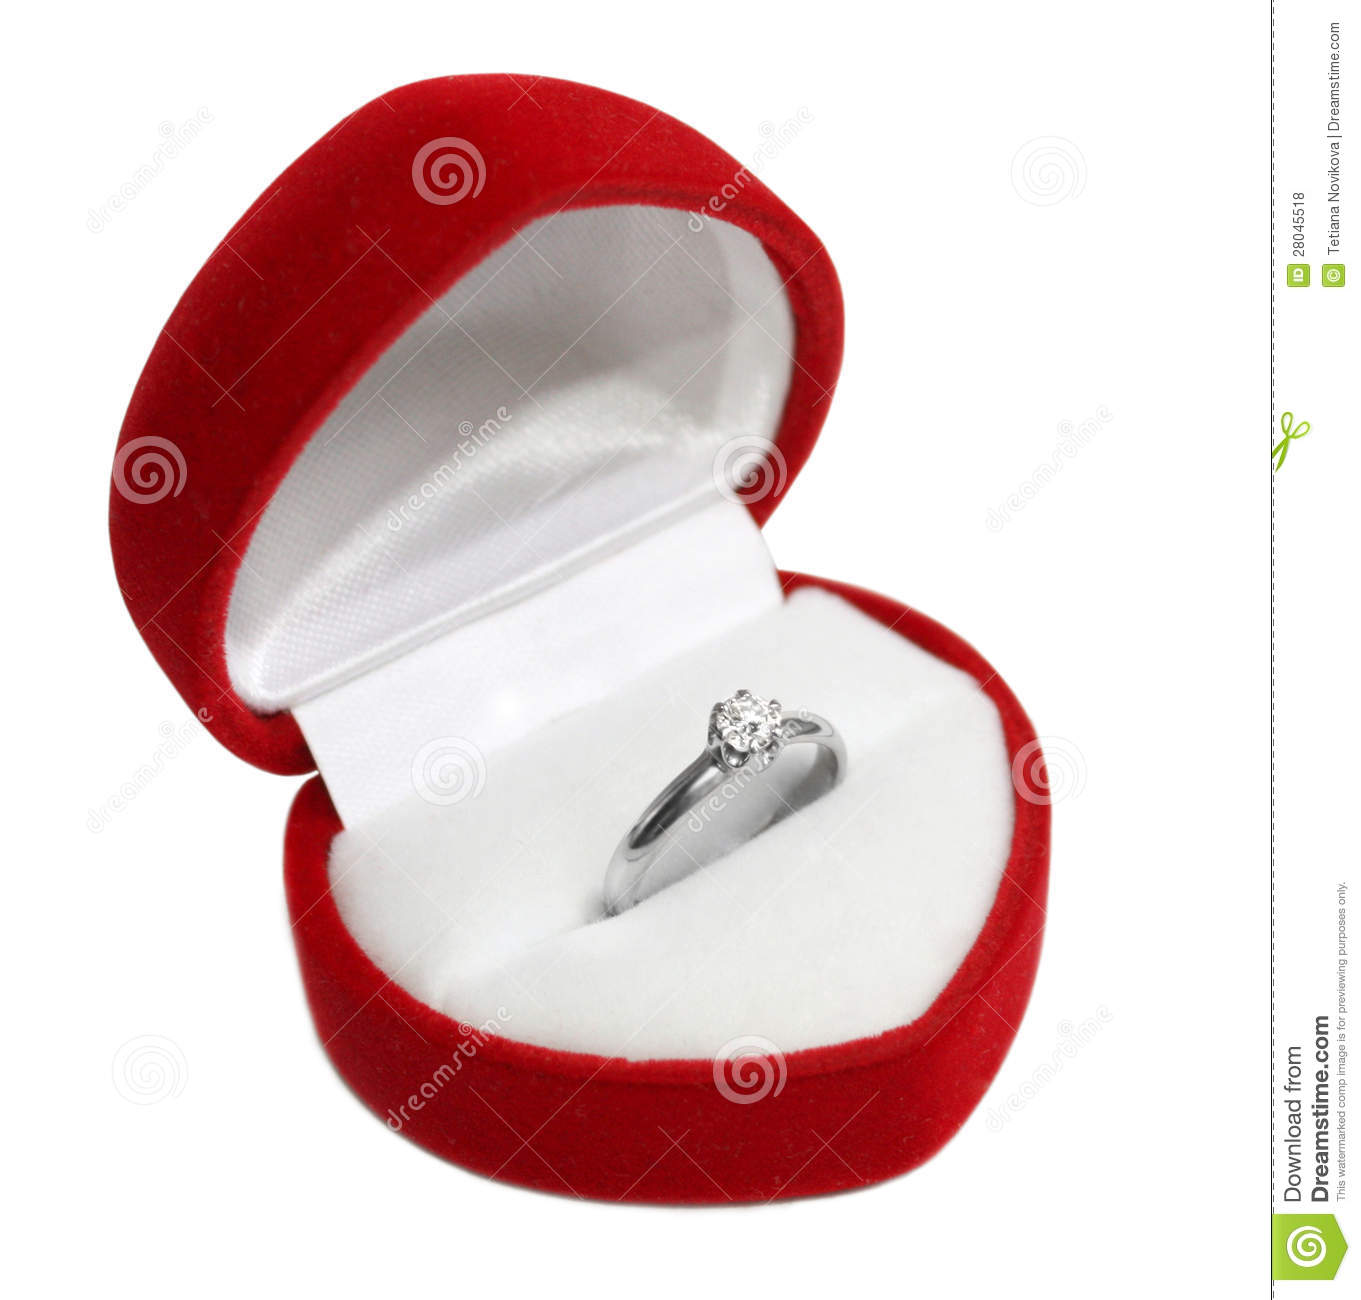 Wedding ring in heart shaped box royalty free stock photos for Heart shaped engagement ring box